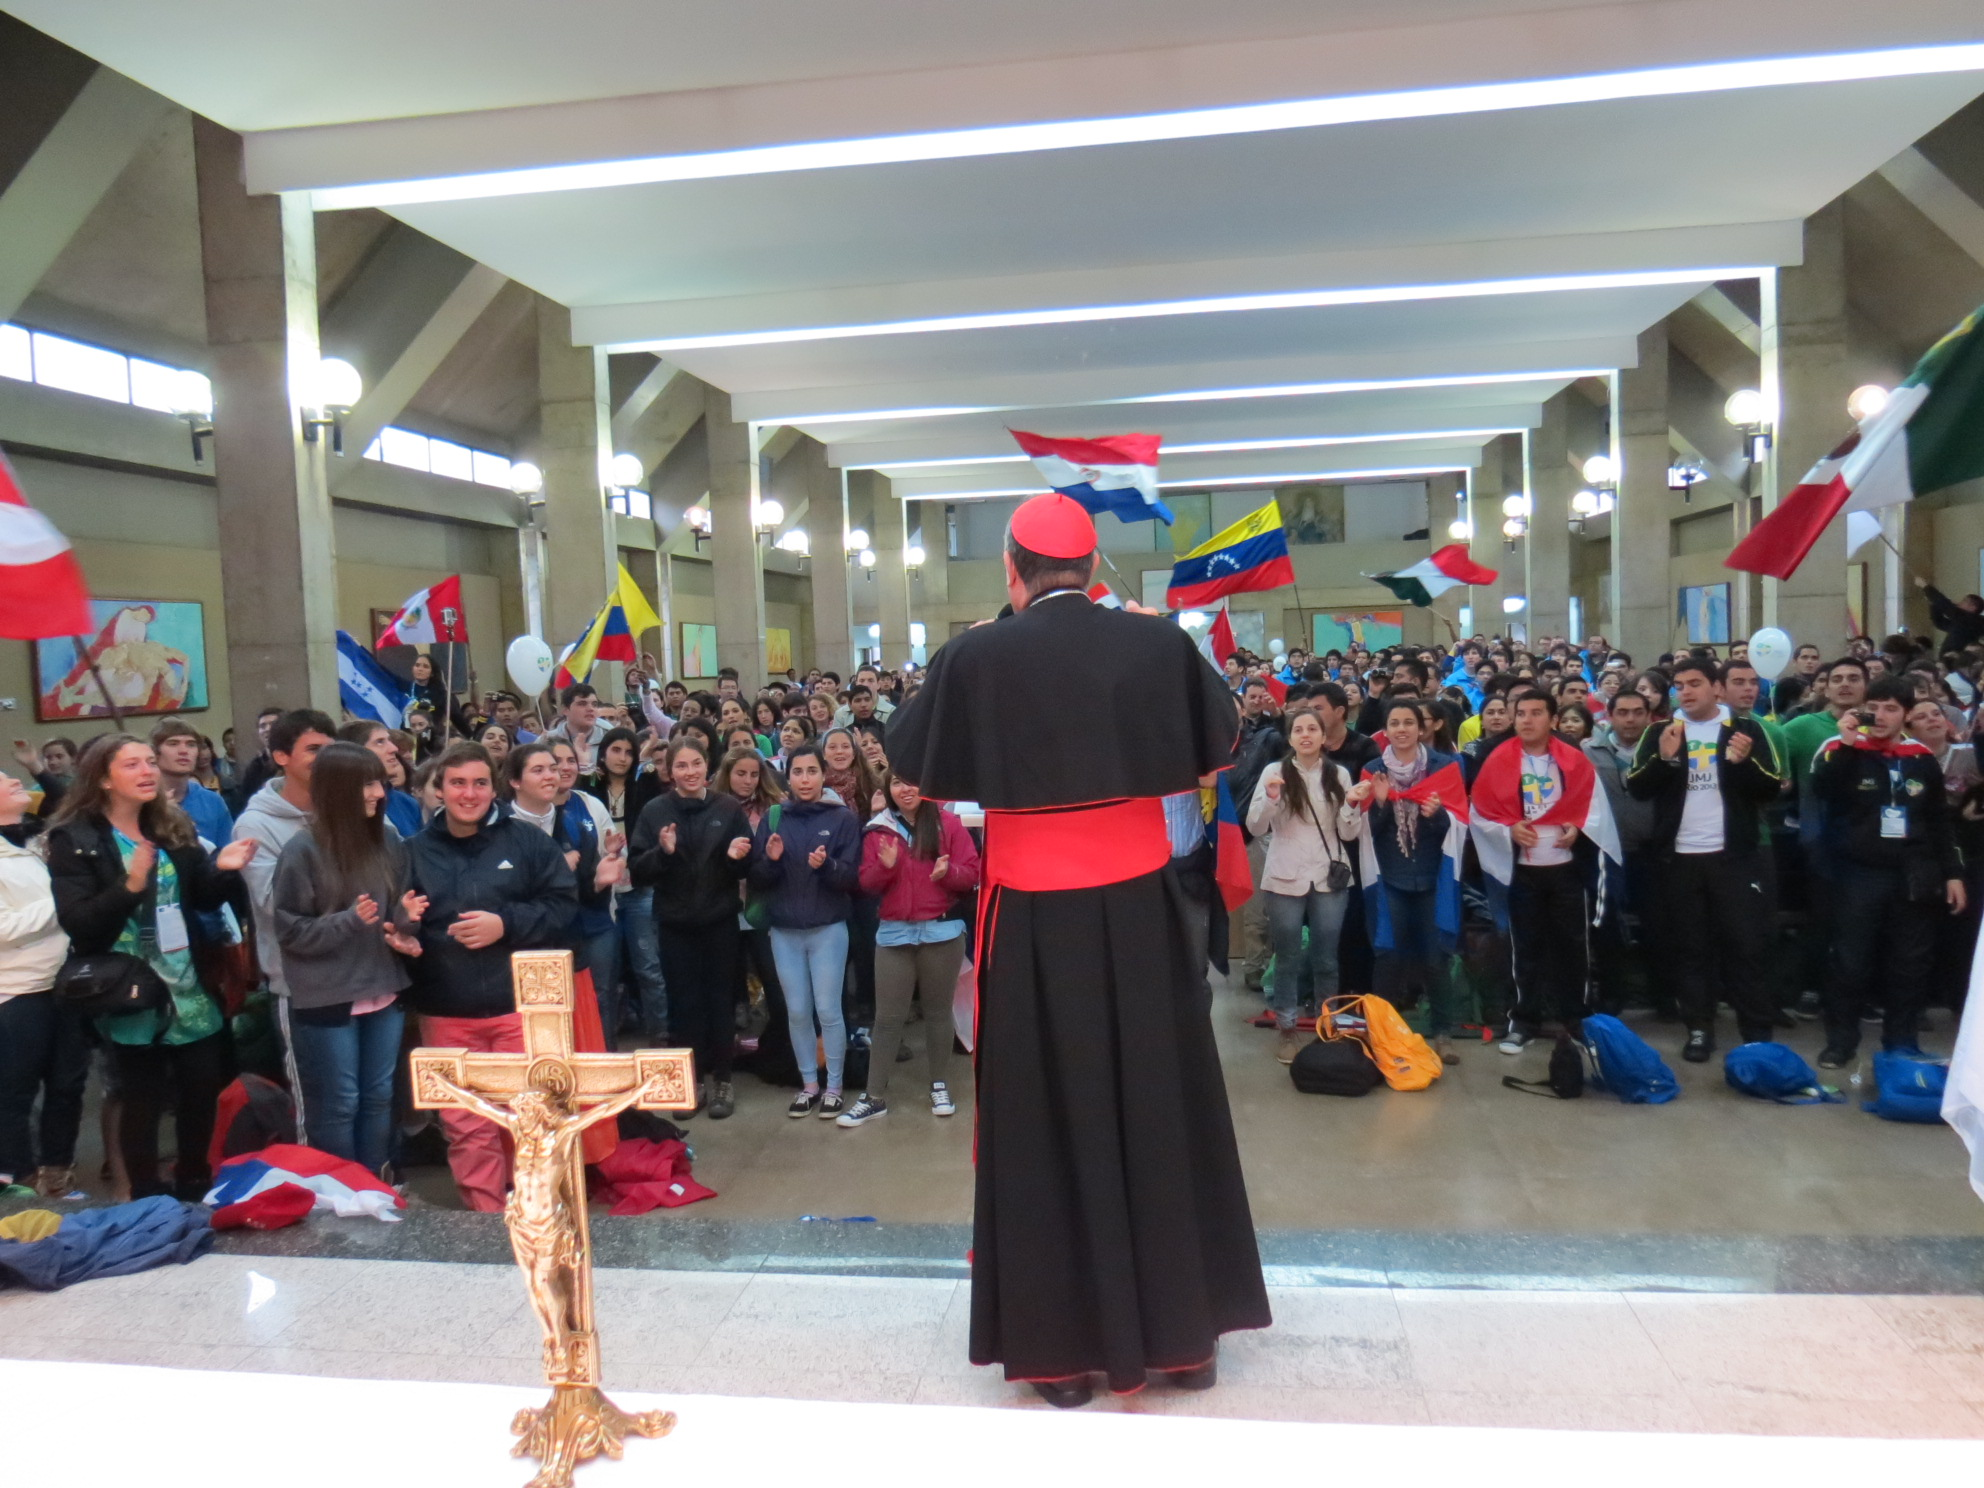 Cardinal Rodriguez addresses pilgrims on the outskirts of Rio. Copyright: Caritas/Michelle Hough